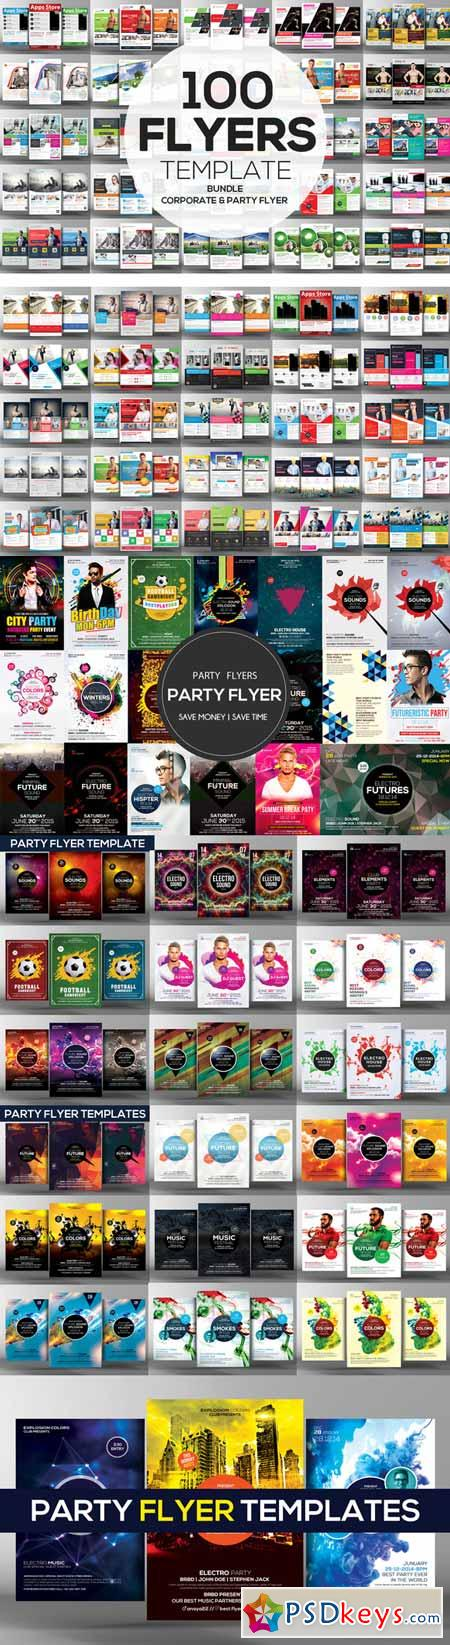 100 Corporate and Party Flyers Psd 457743